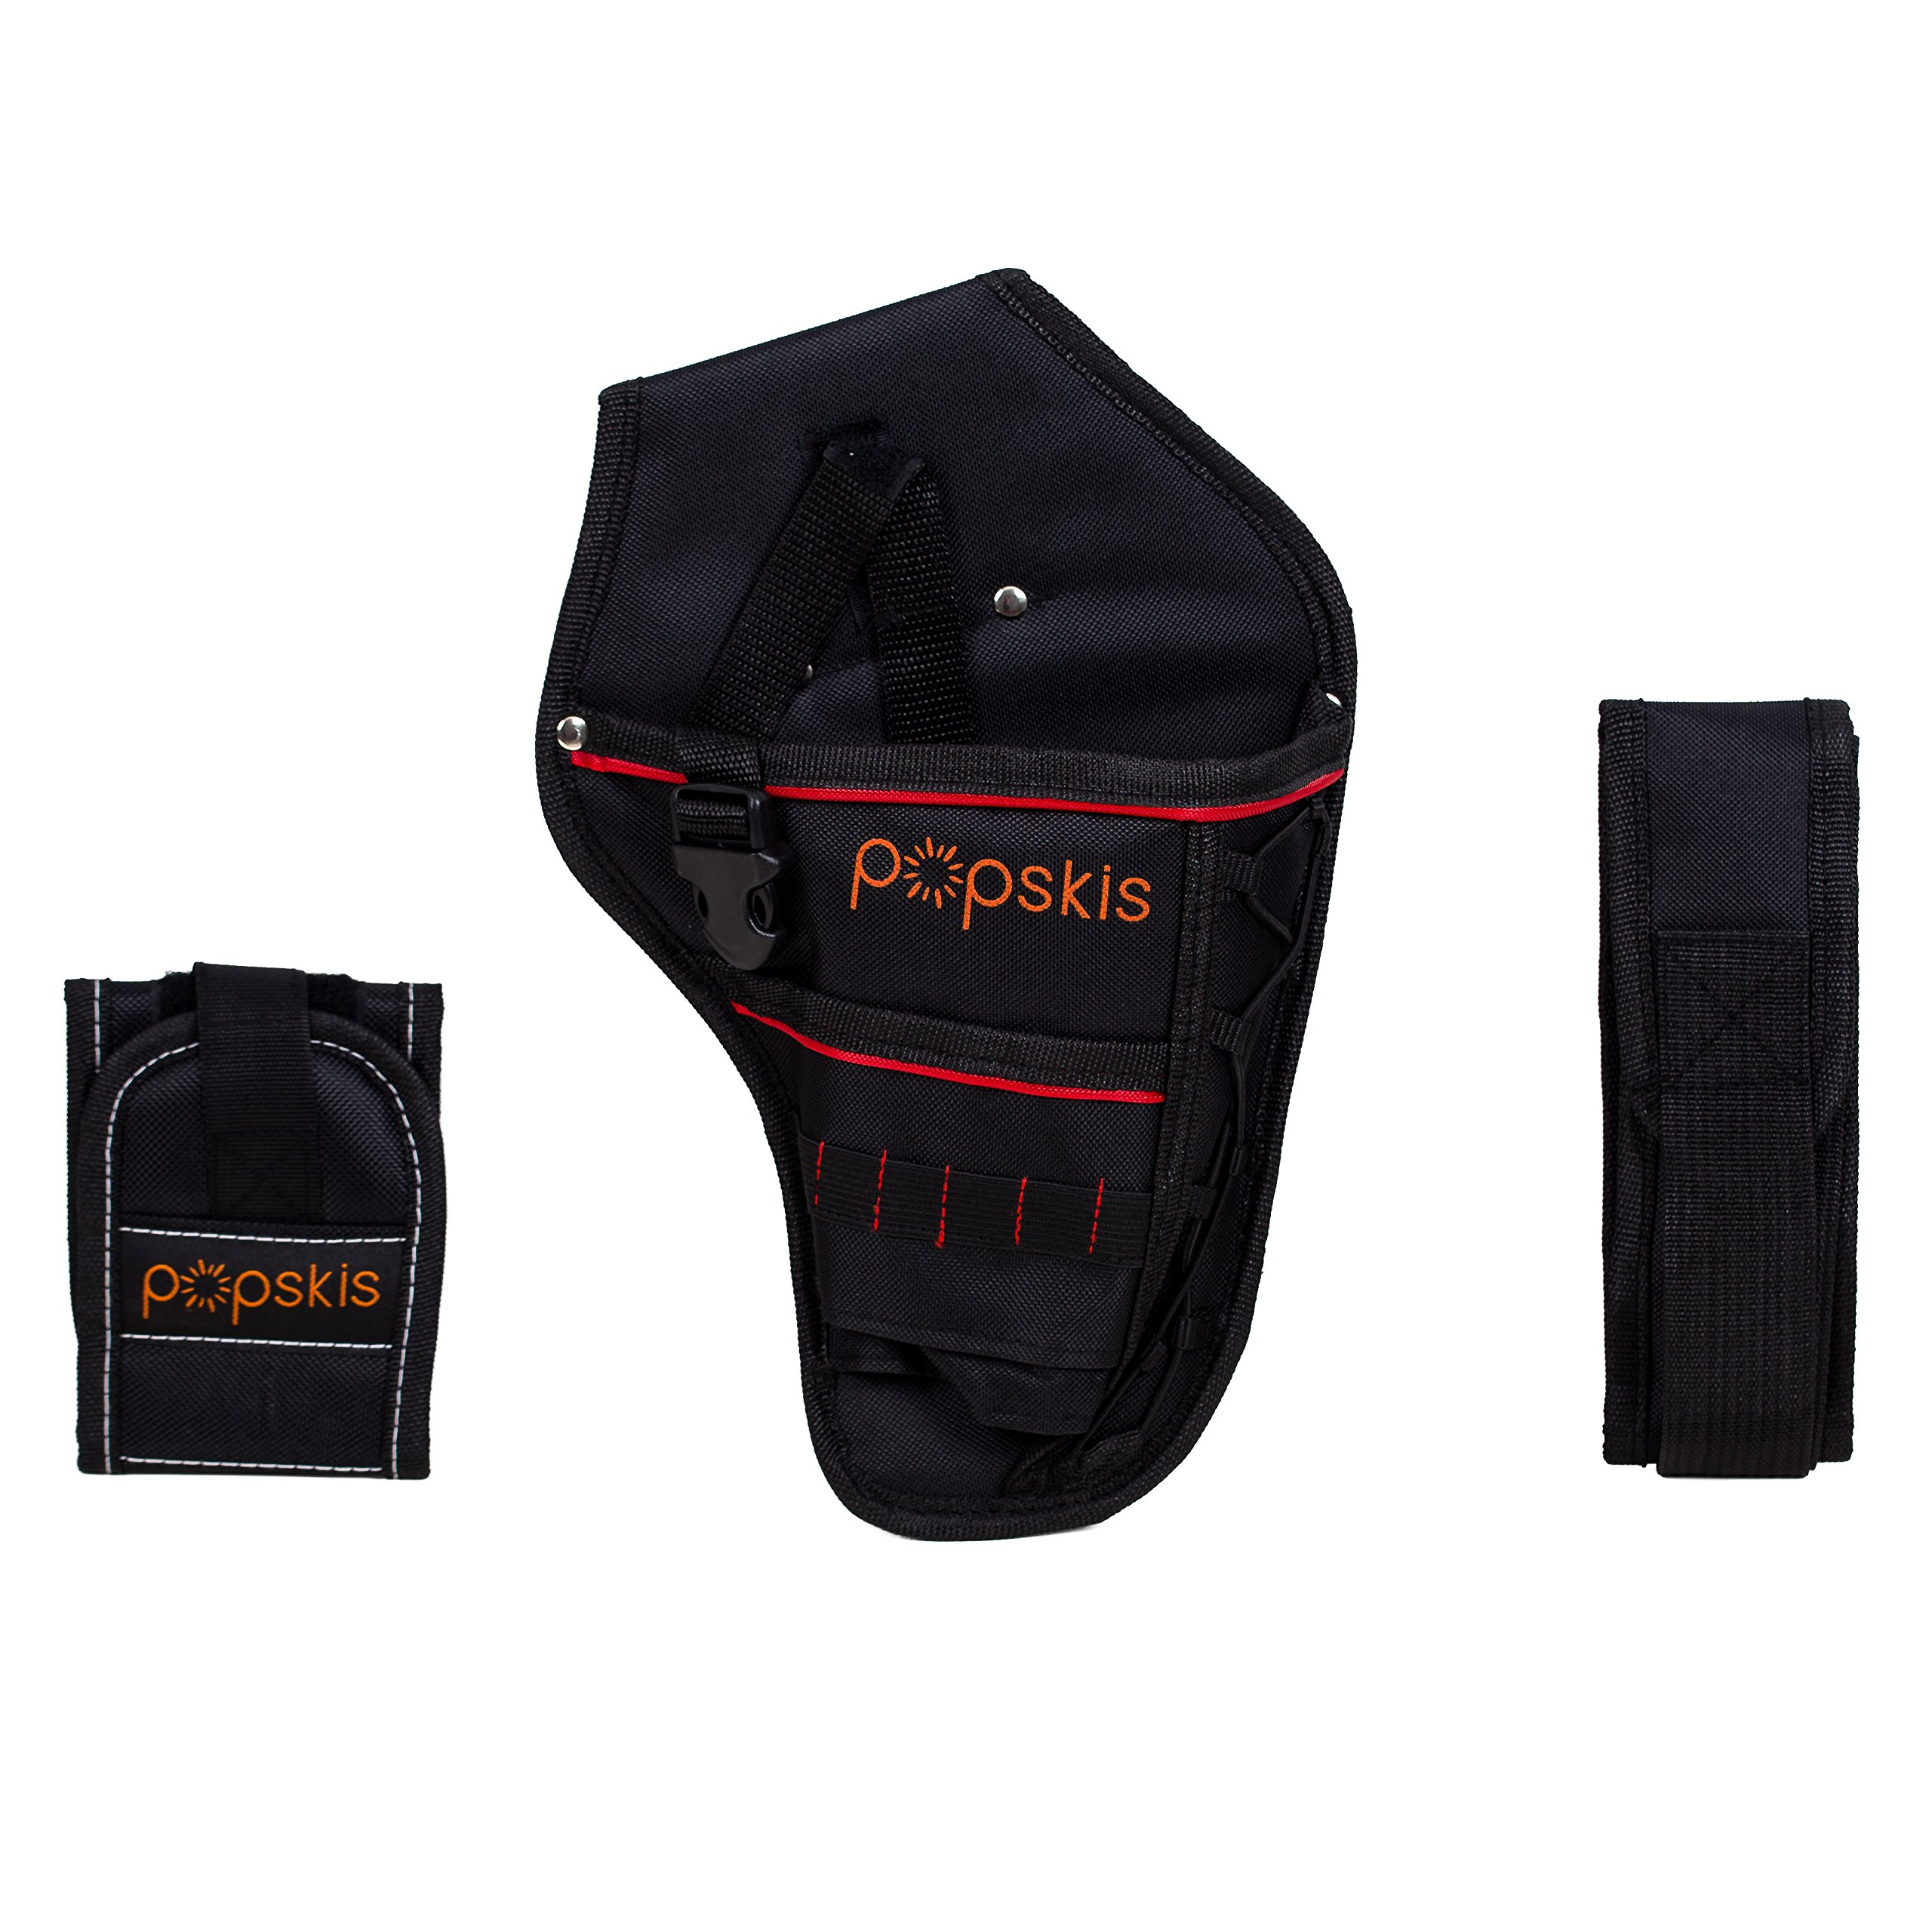 Cordless Drill Holster With Adjustable Belt & Magnetic Wristband Accessories Holds Light Battery Tools Screws Nuts Bolts Drill Bits by pOpskis (Image #2)